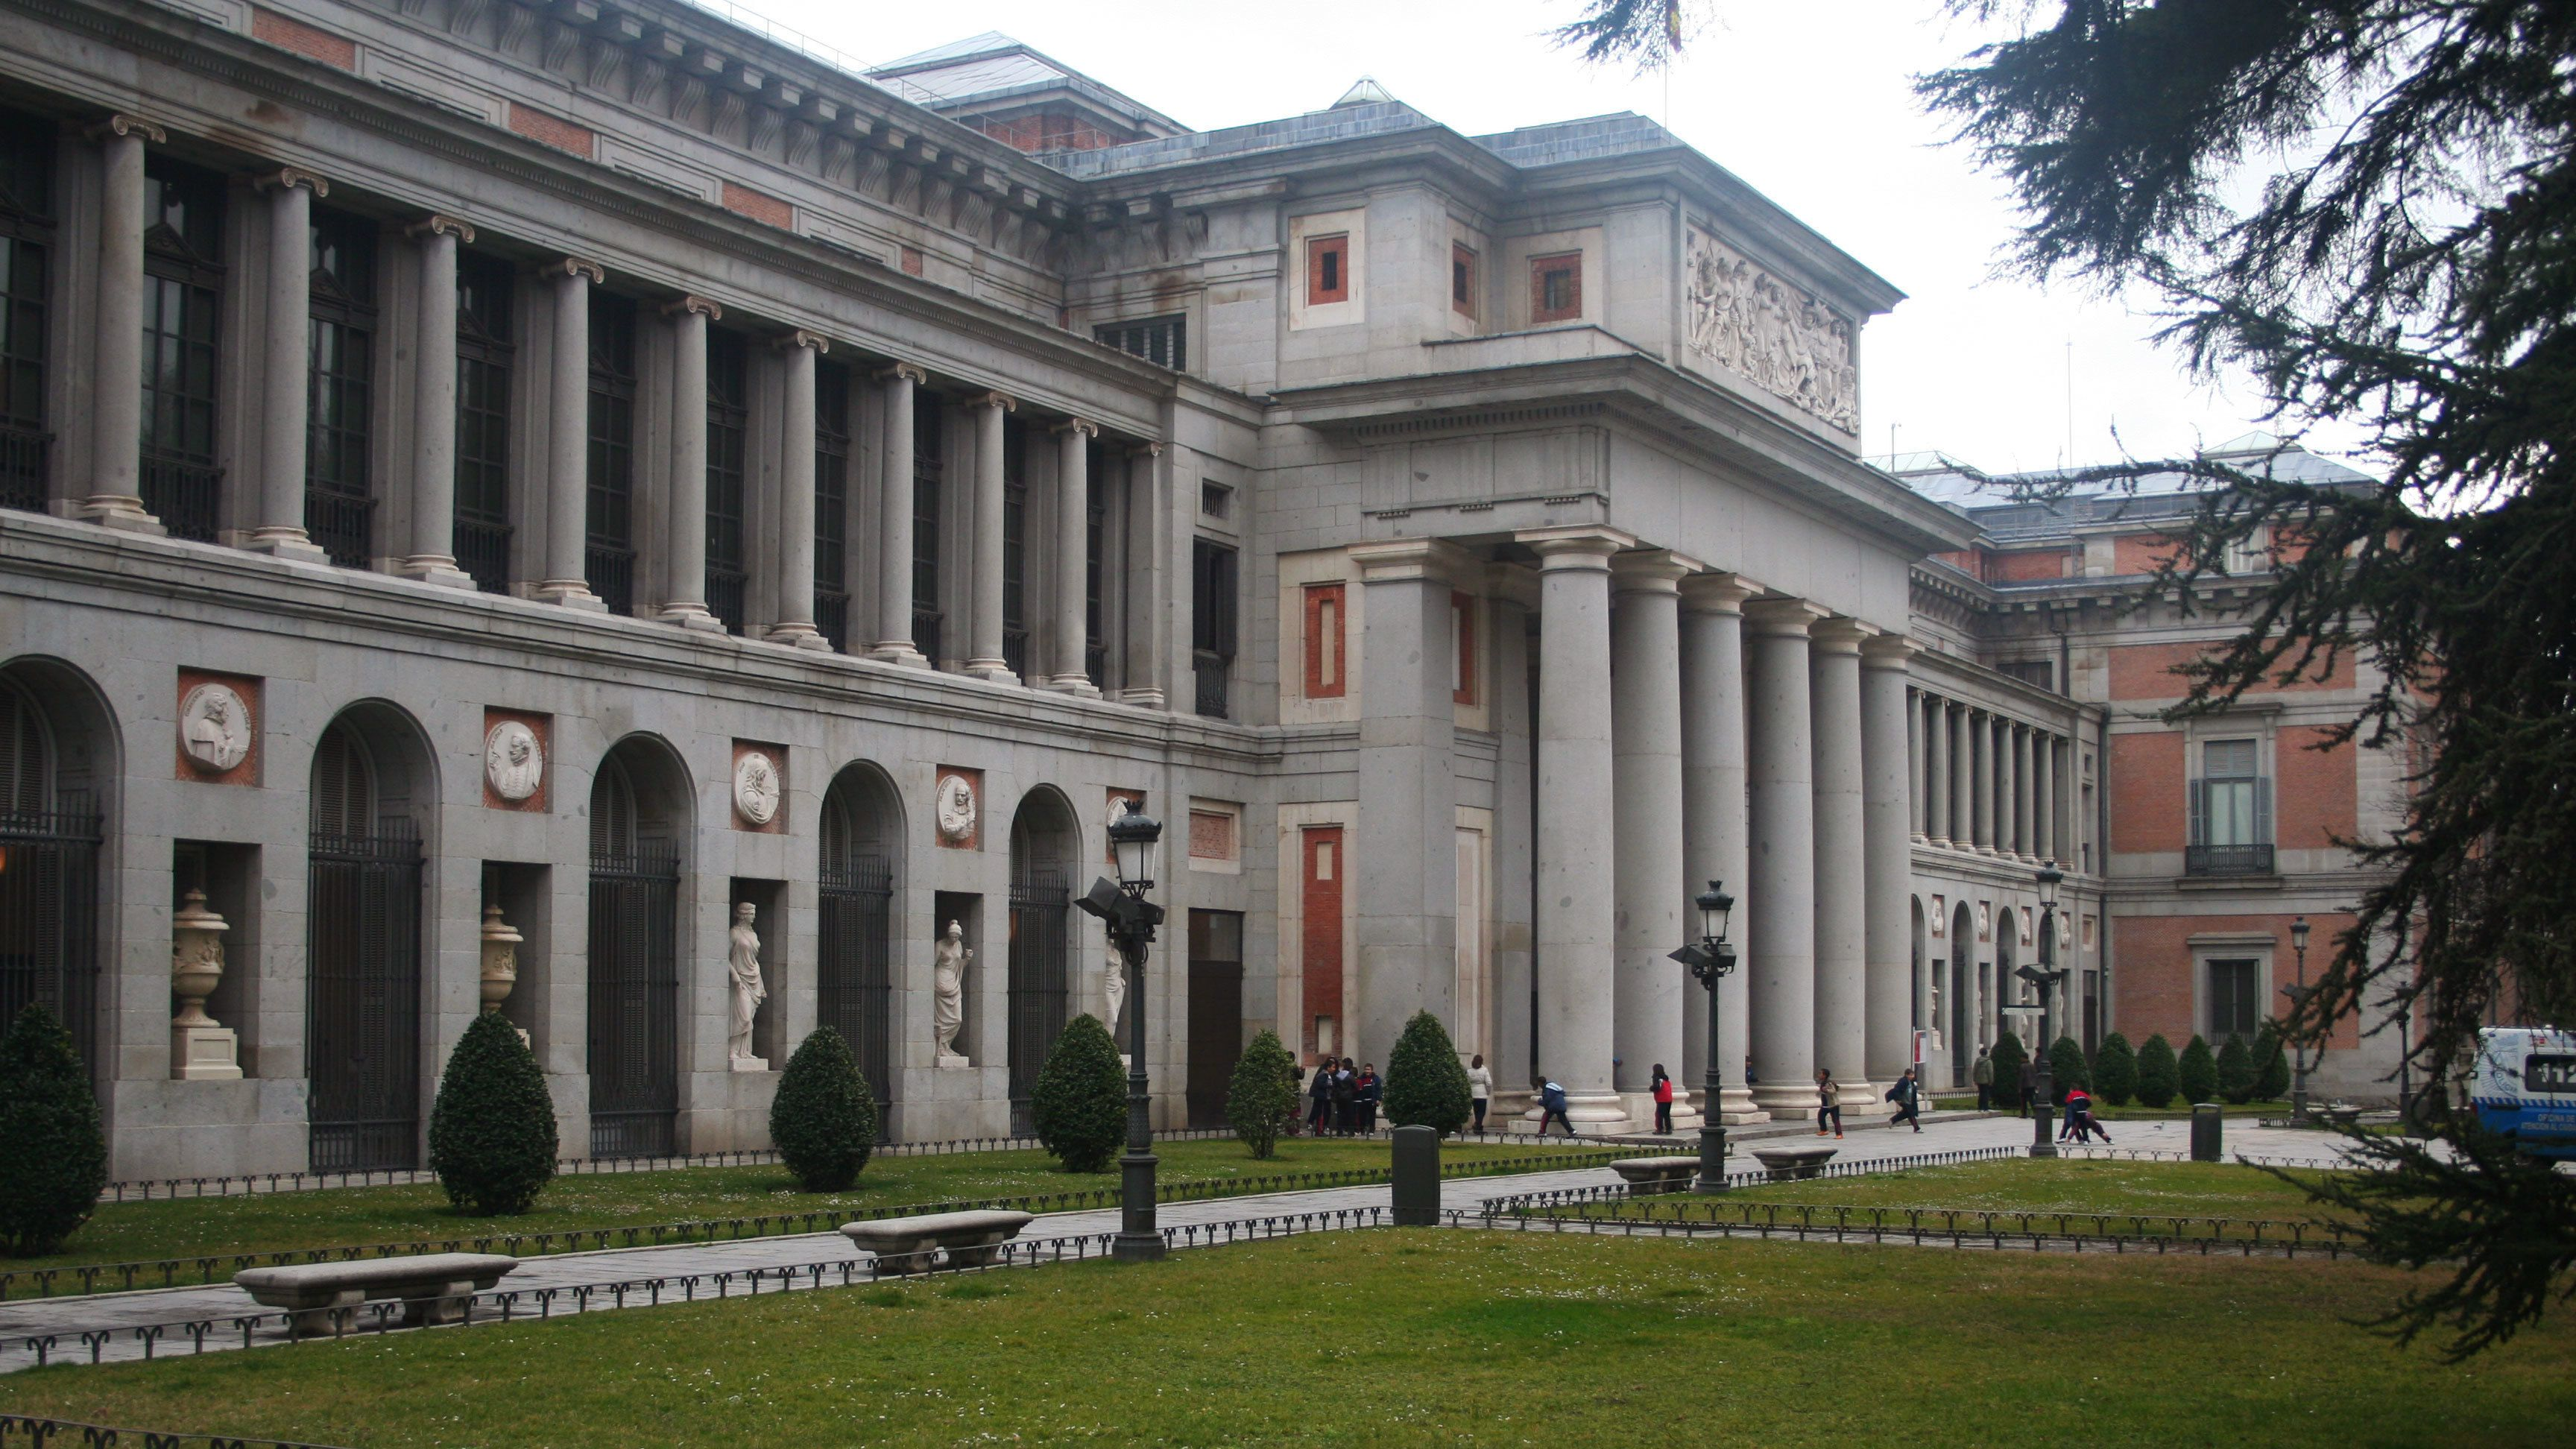 Side view of the Museo del Prado the main Spanish national art museum in Madrid